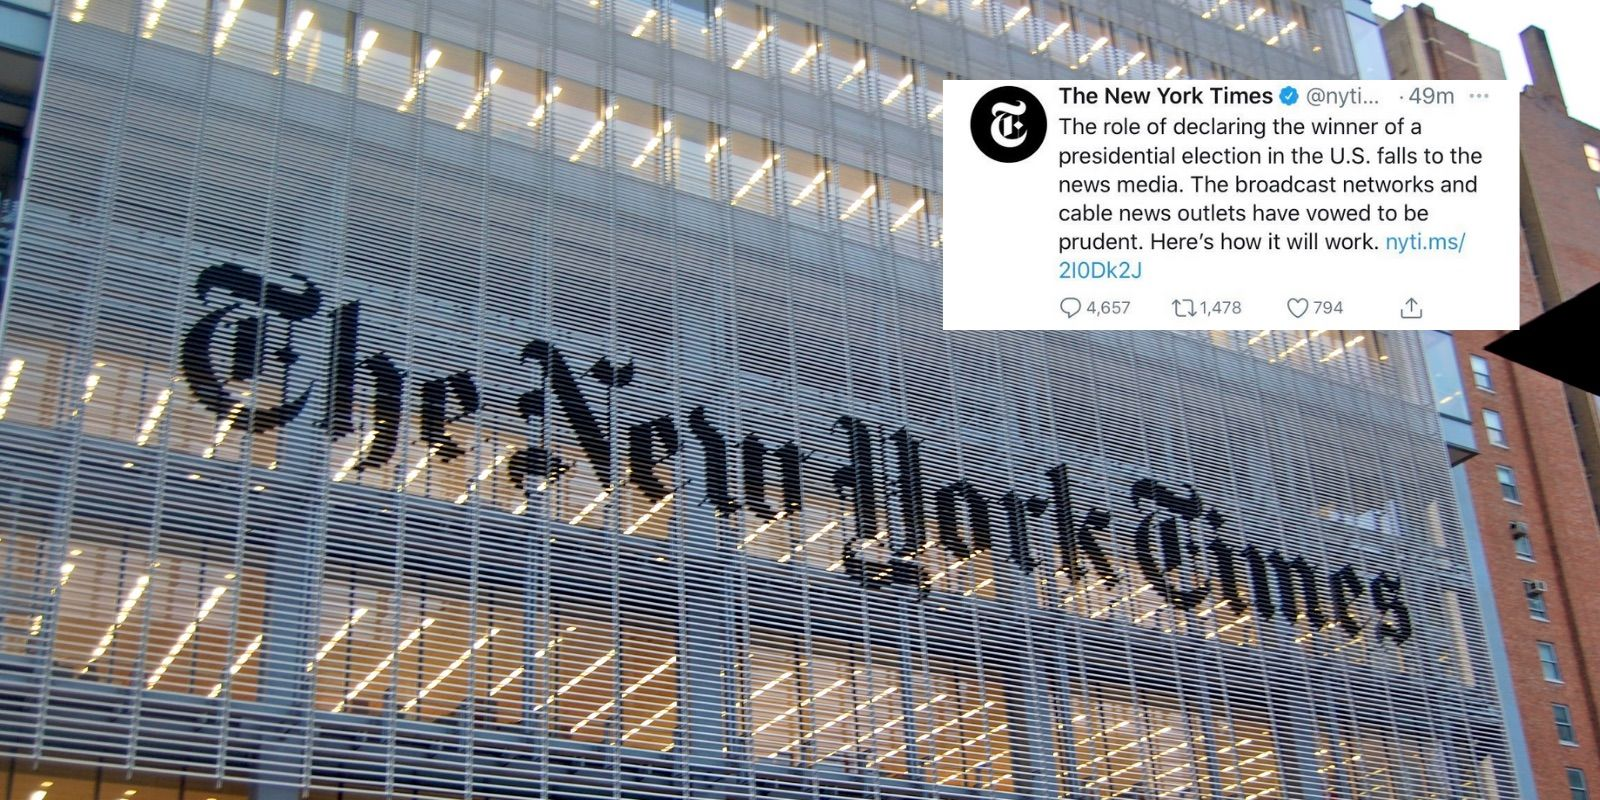 The New York Times spreads election disinformation about declaring the winner on election day